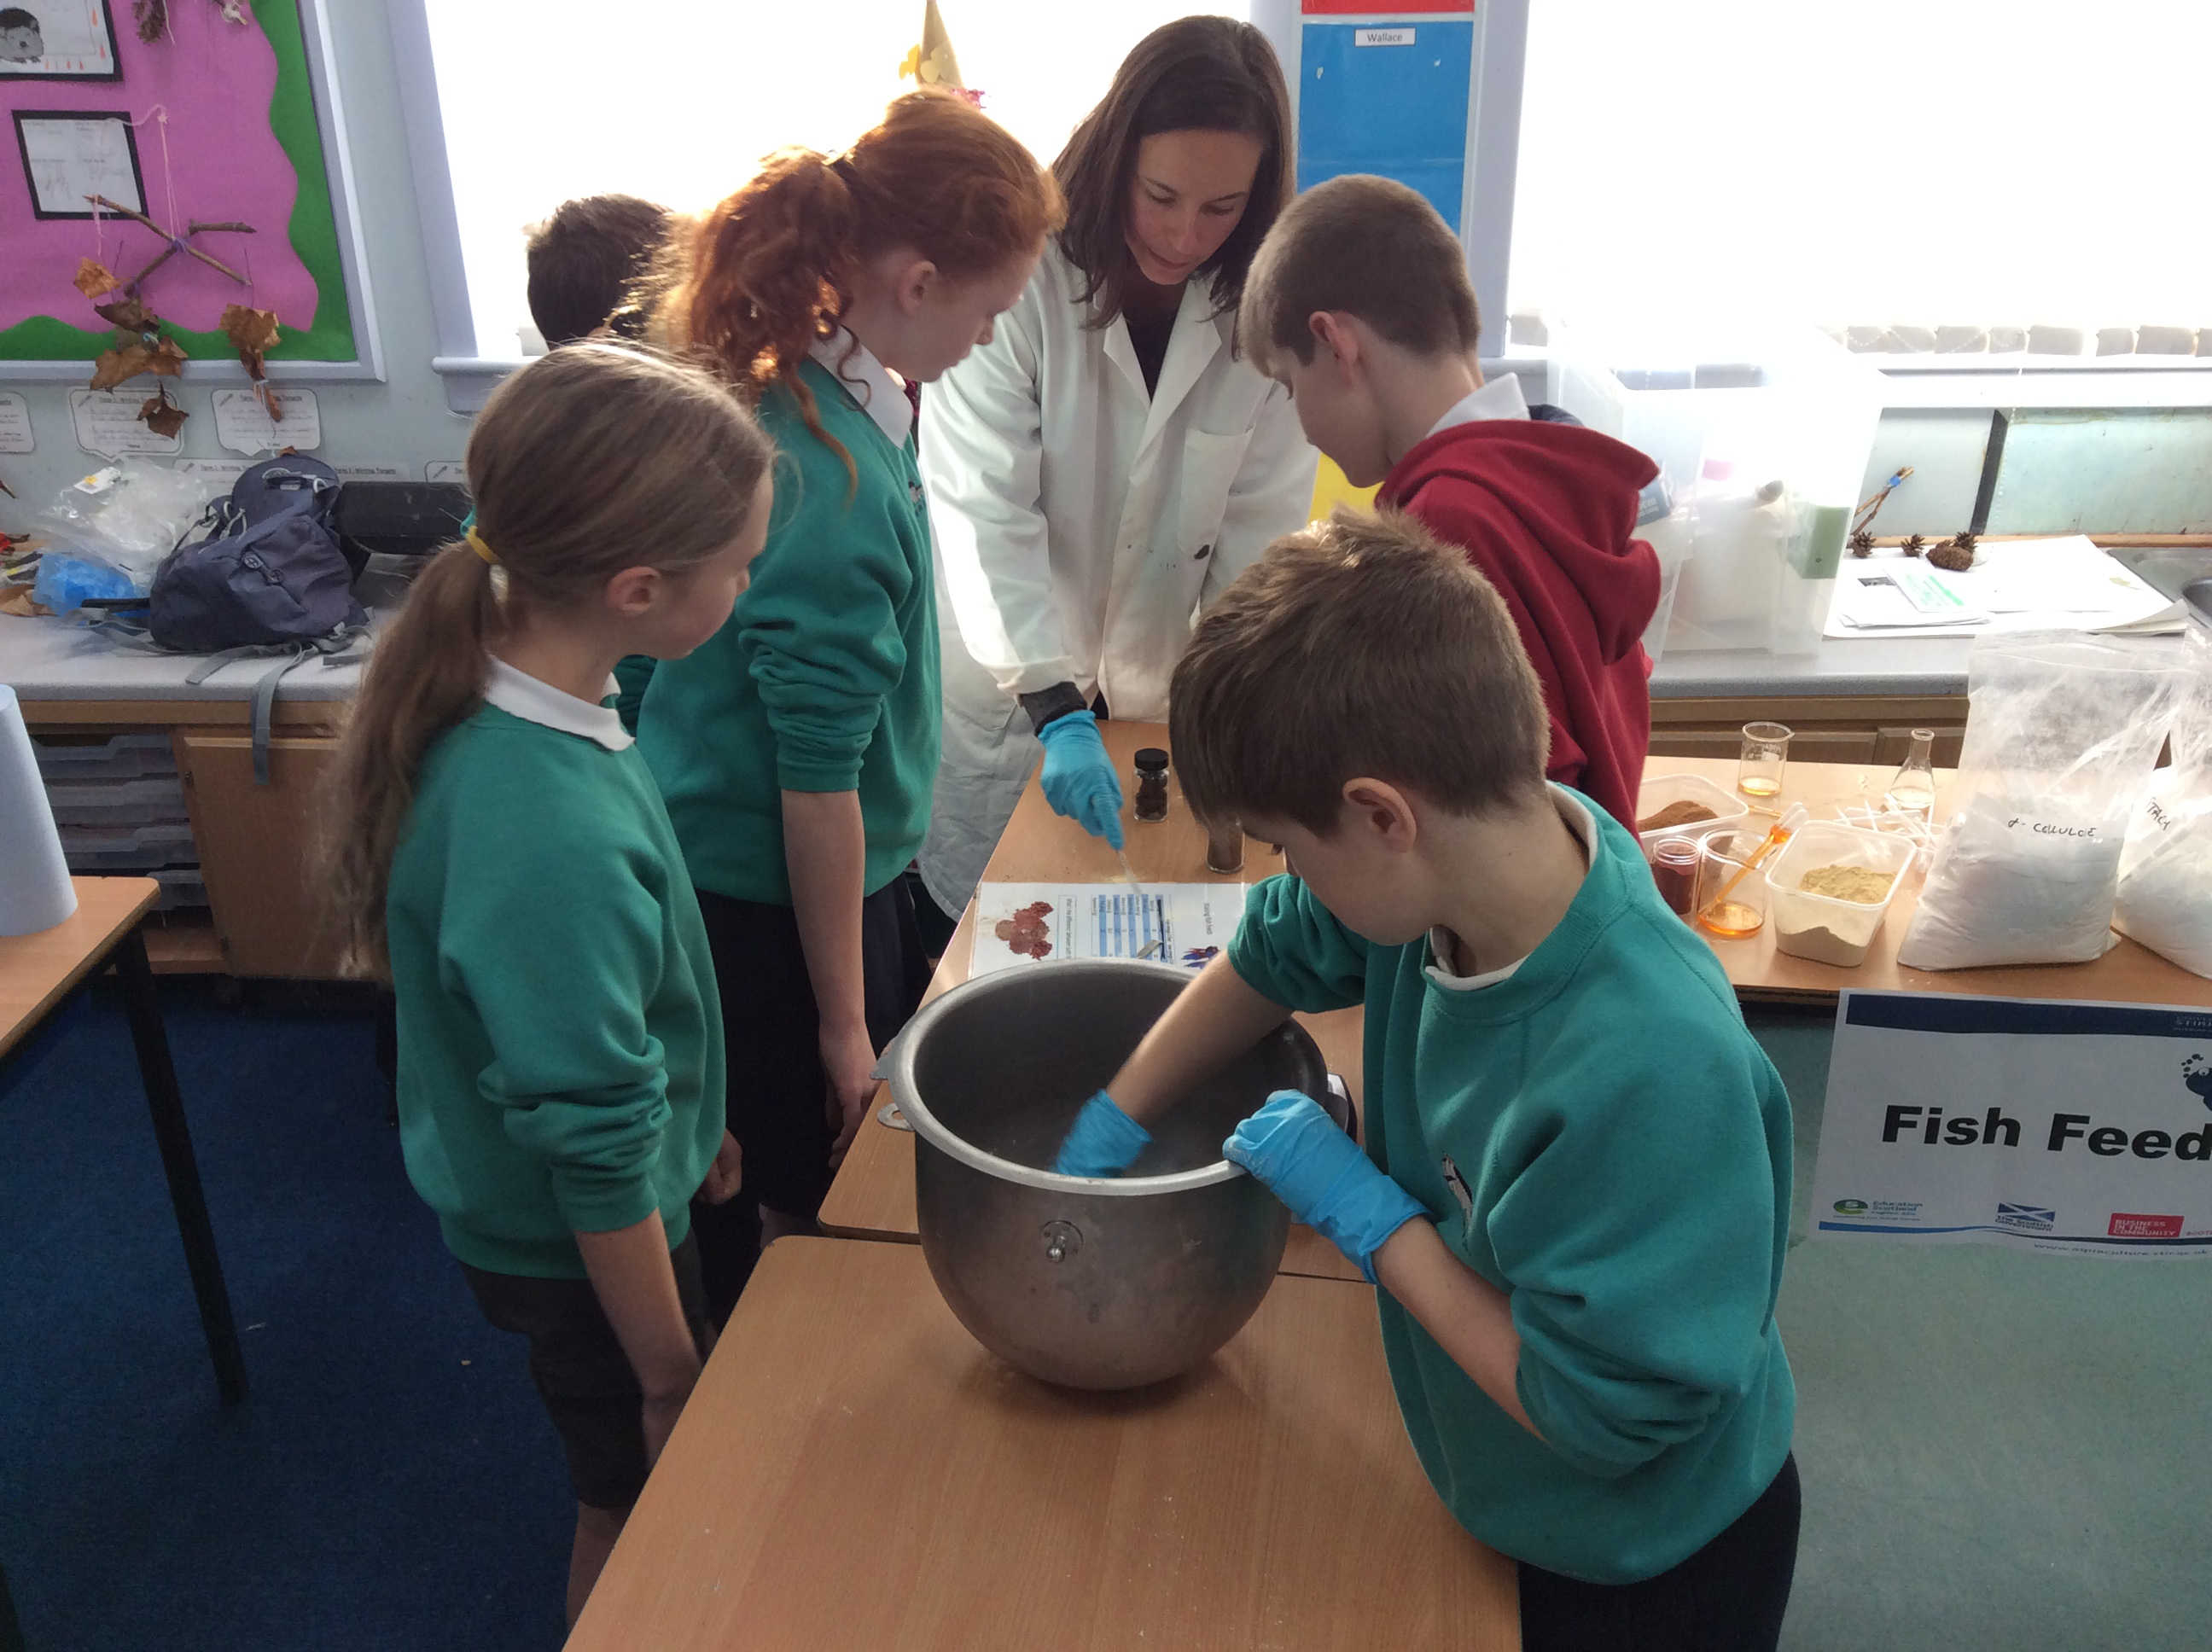 The hands-on lessons taught primary school pupils about the health benefits of eating fish